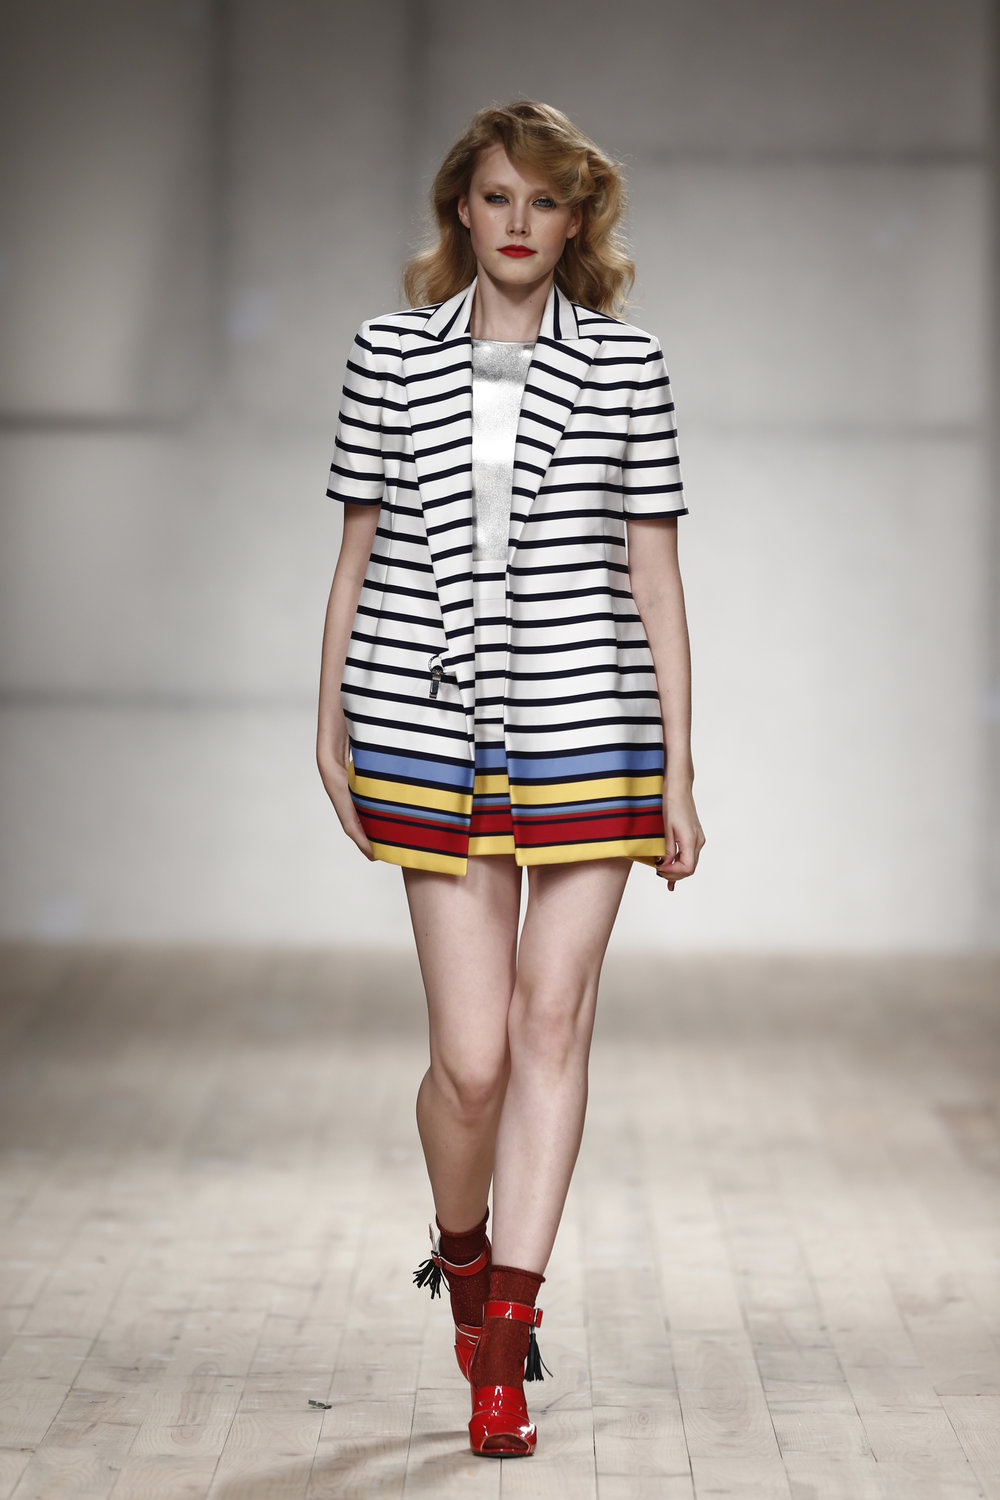 color striped blazer  One available size 36 Original Price 473€ | Discount Price 236€ Ref. Lcss17s46